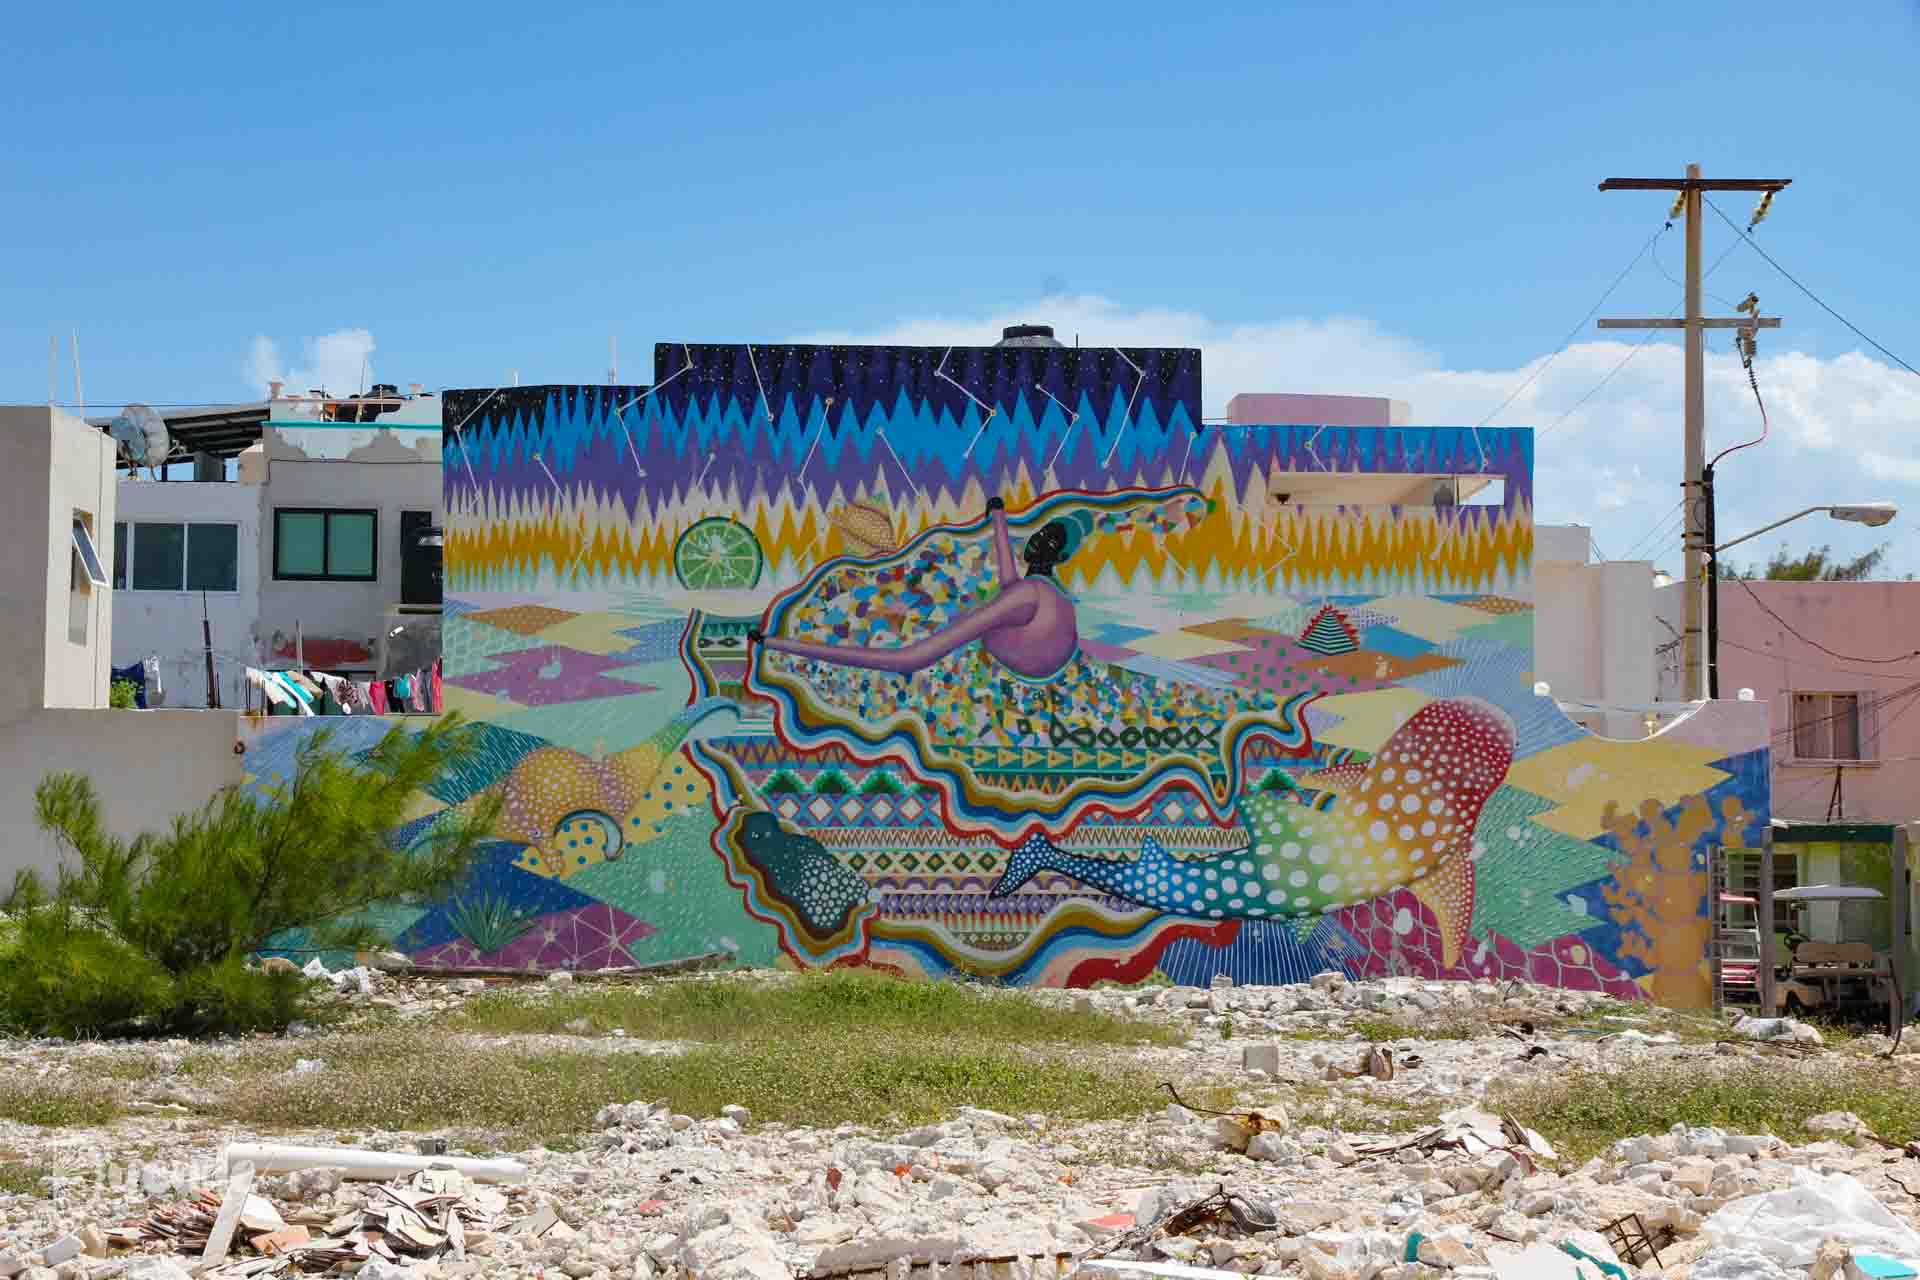 Seawalls mural by Aaron Glasson and Yoh Nagao